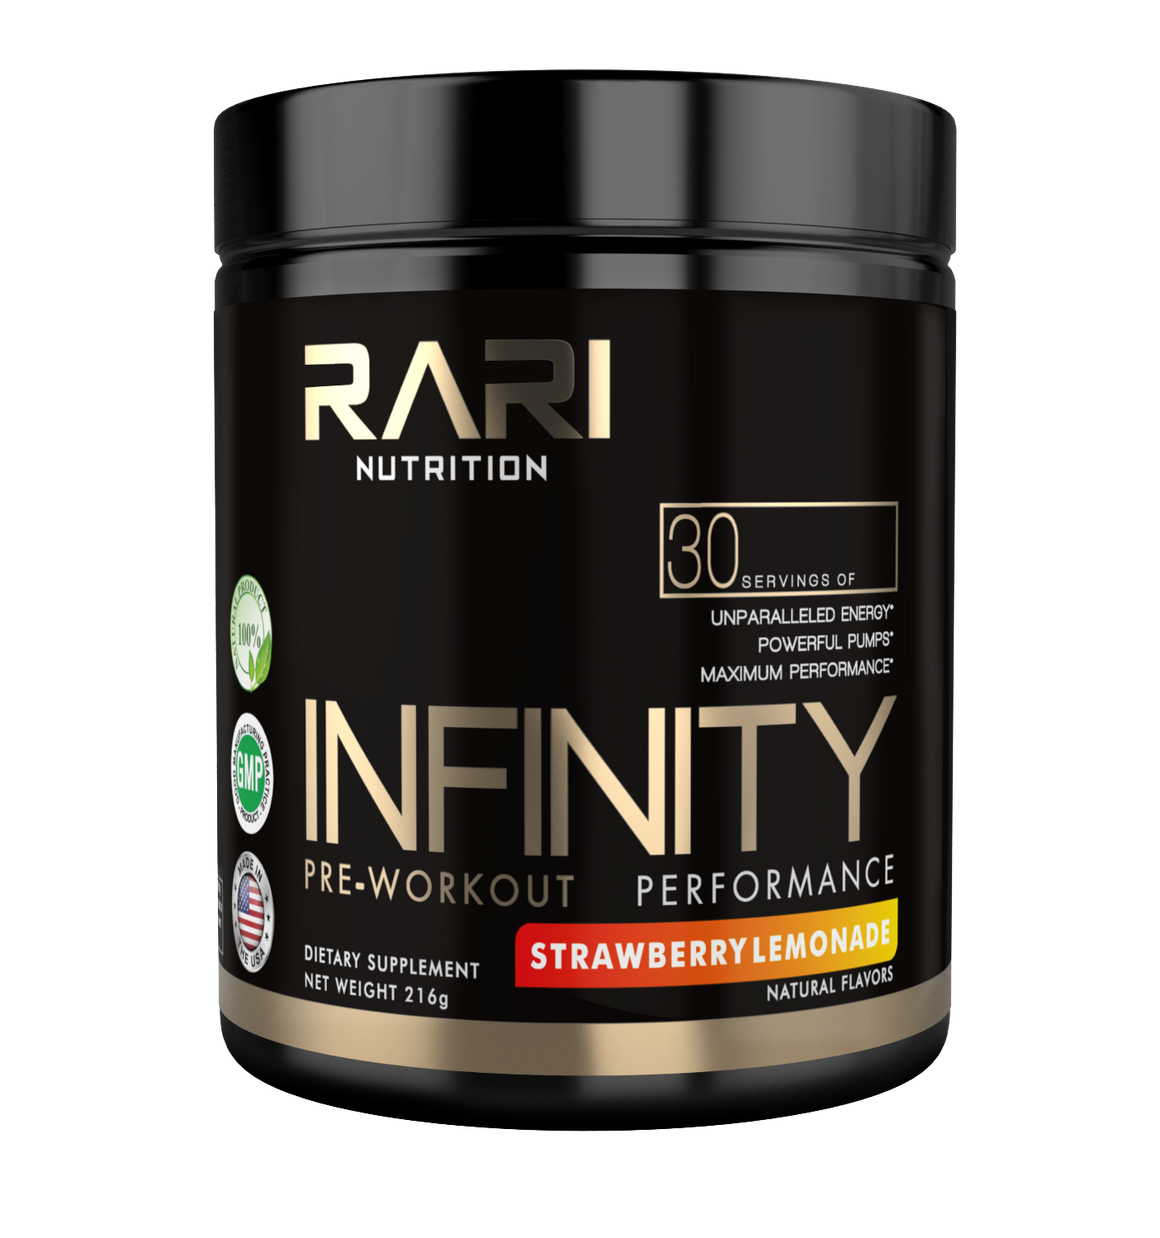 RARI Nutrition - INFINITY 100% Natural Pre Workout Powder for Energy, Focus, and Performance - No Creatine - No Artificial Flavors or Colors - 30 Servings